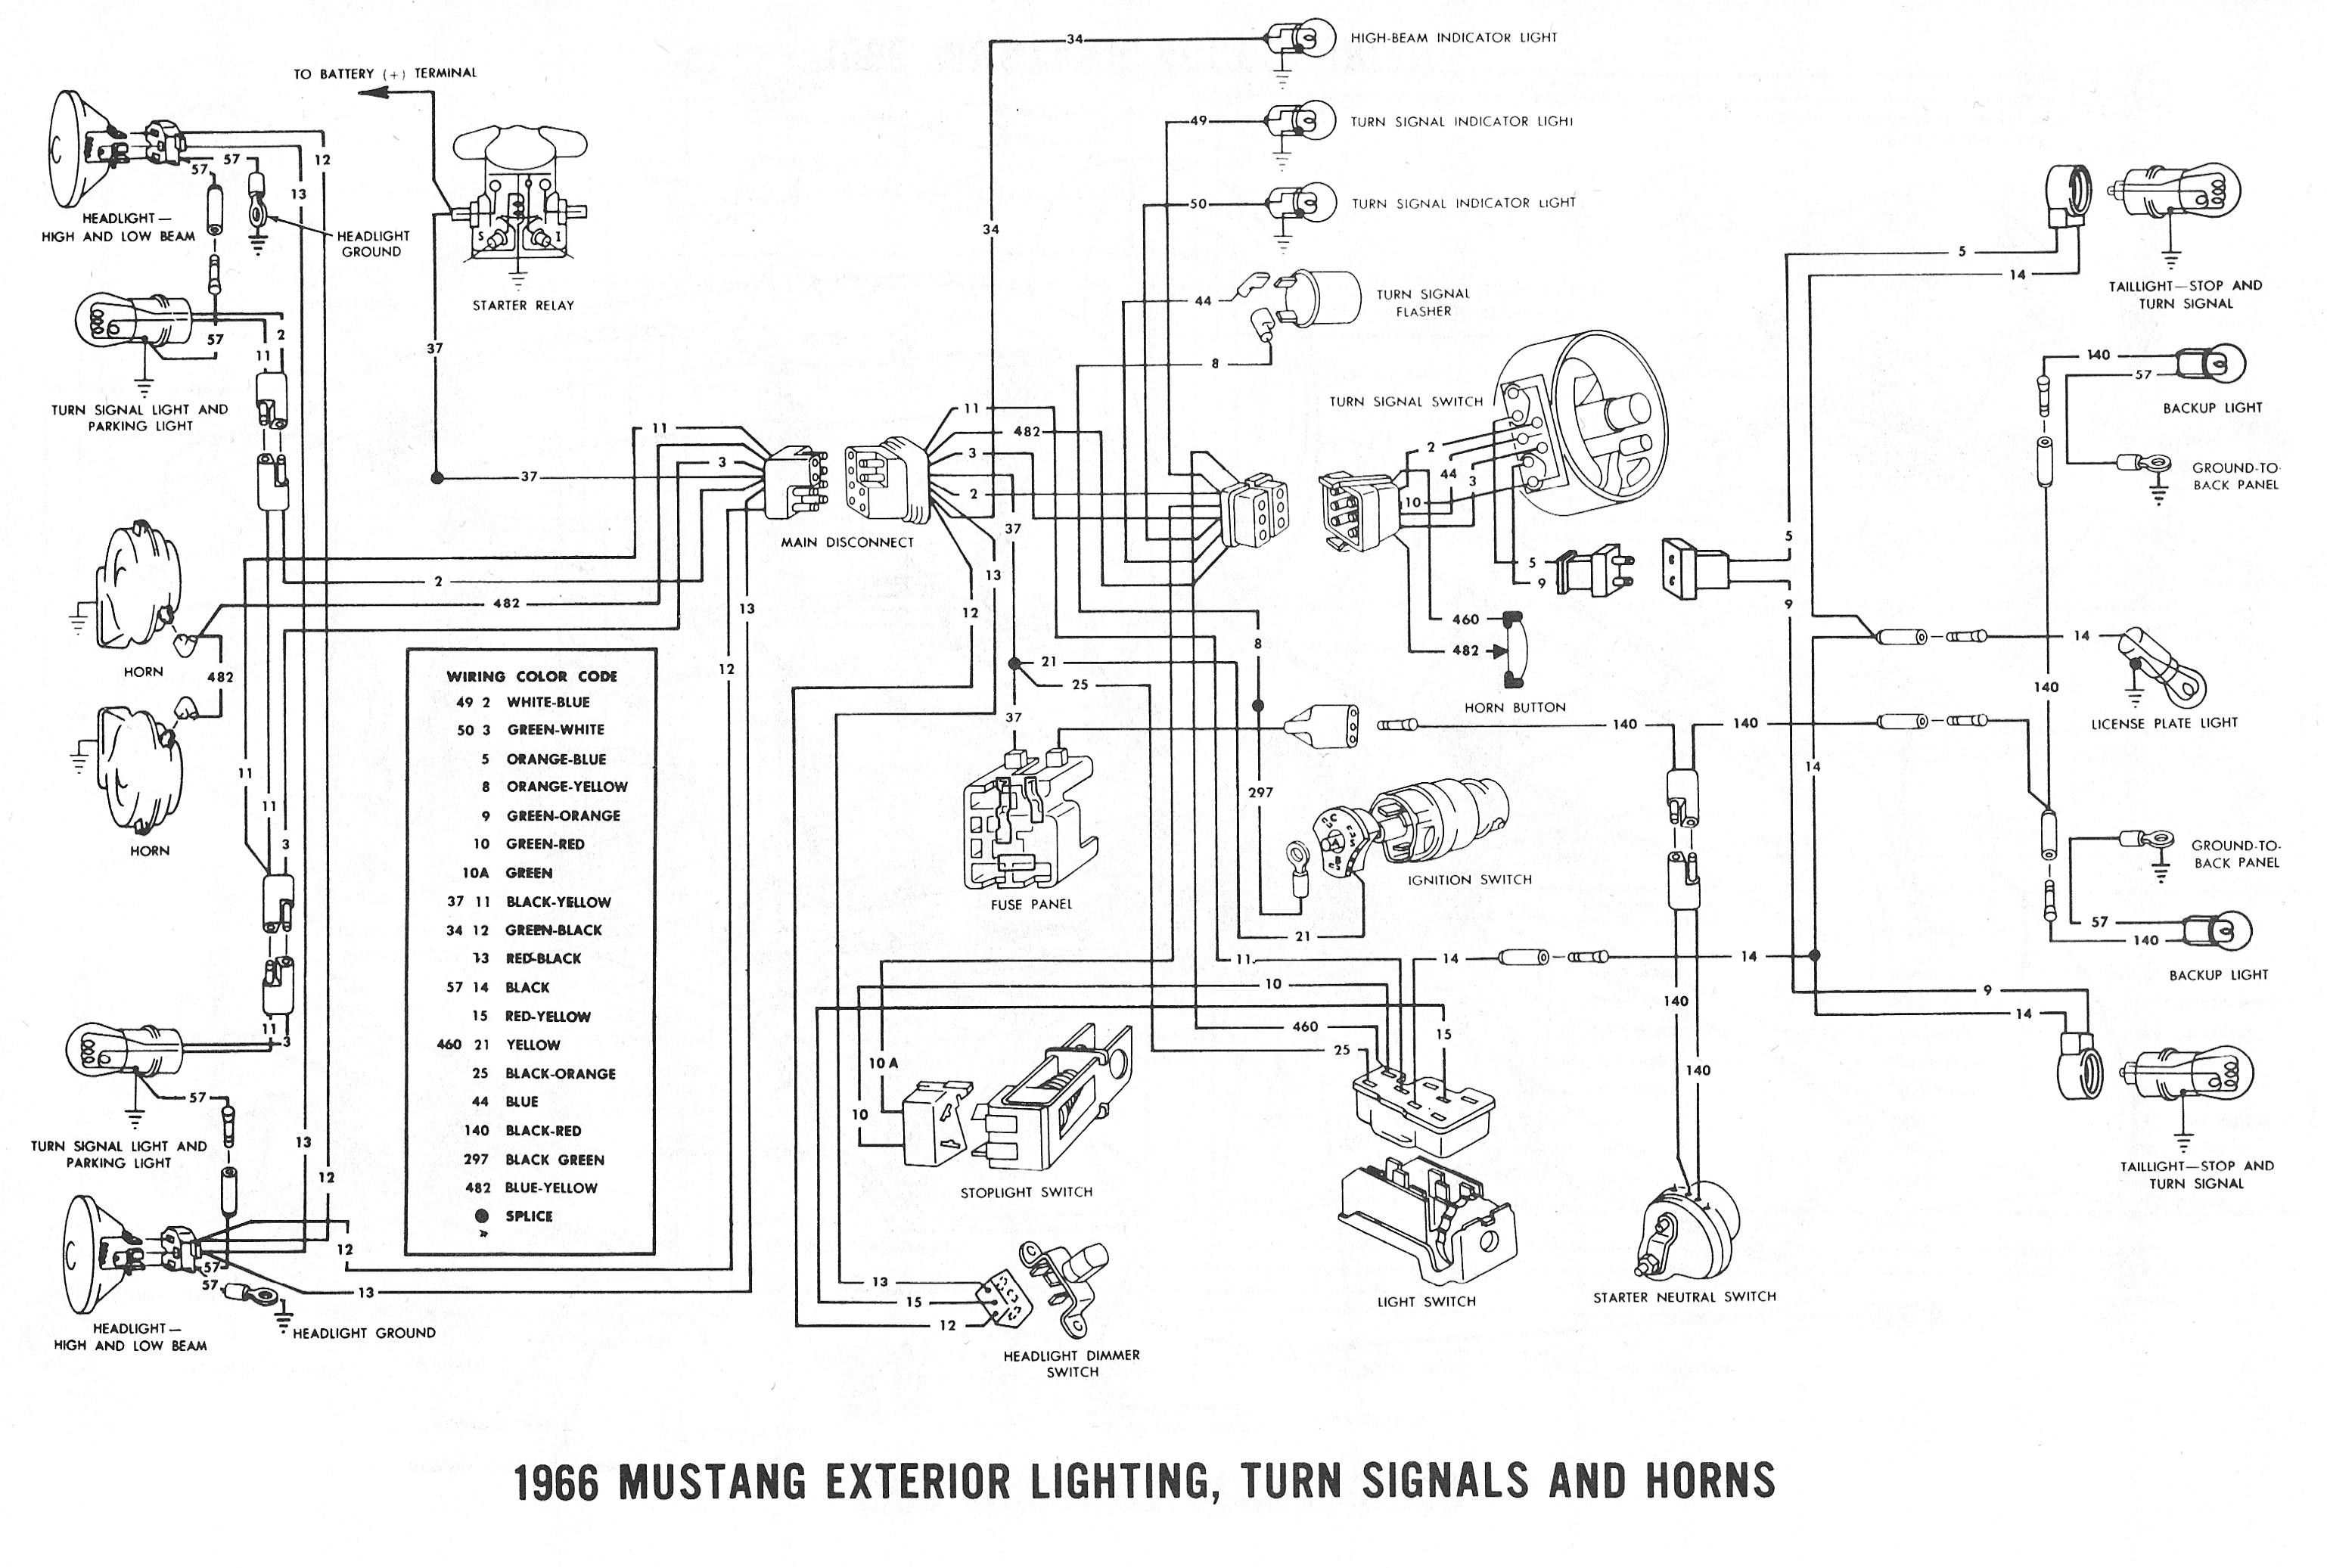 Chevy Ignition Switch Wiring Diagram On 58 Ford F100 Wiring Diagrams